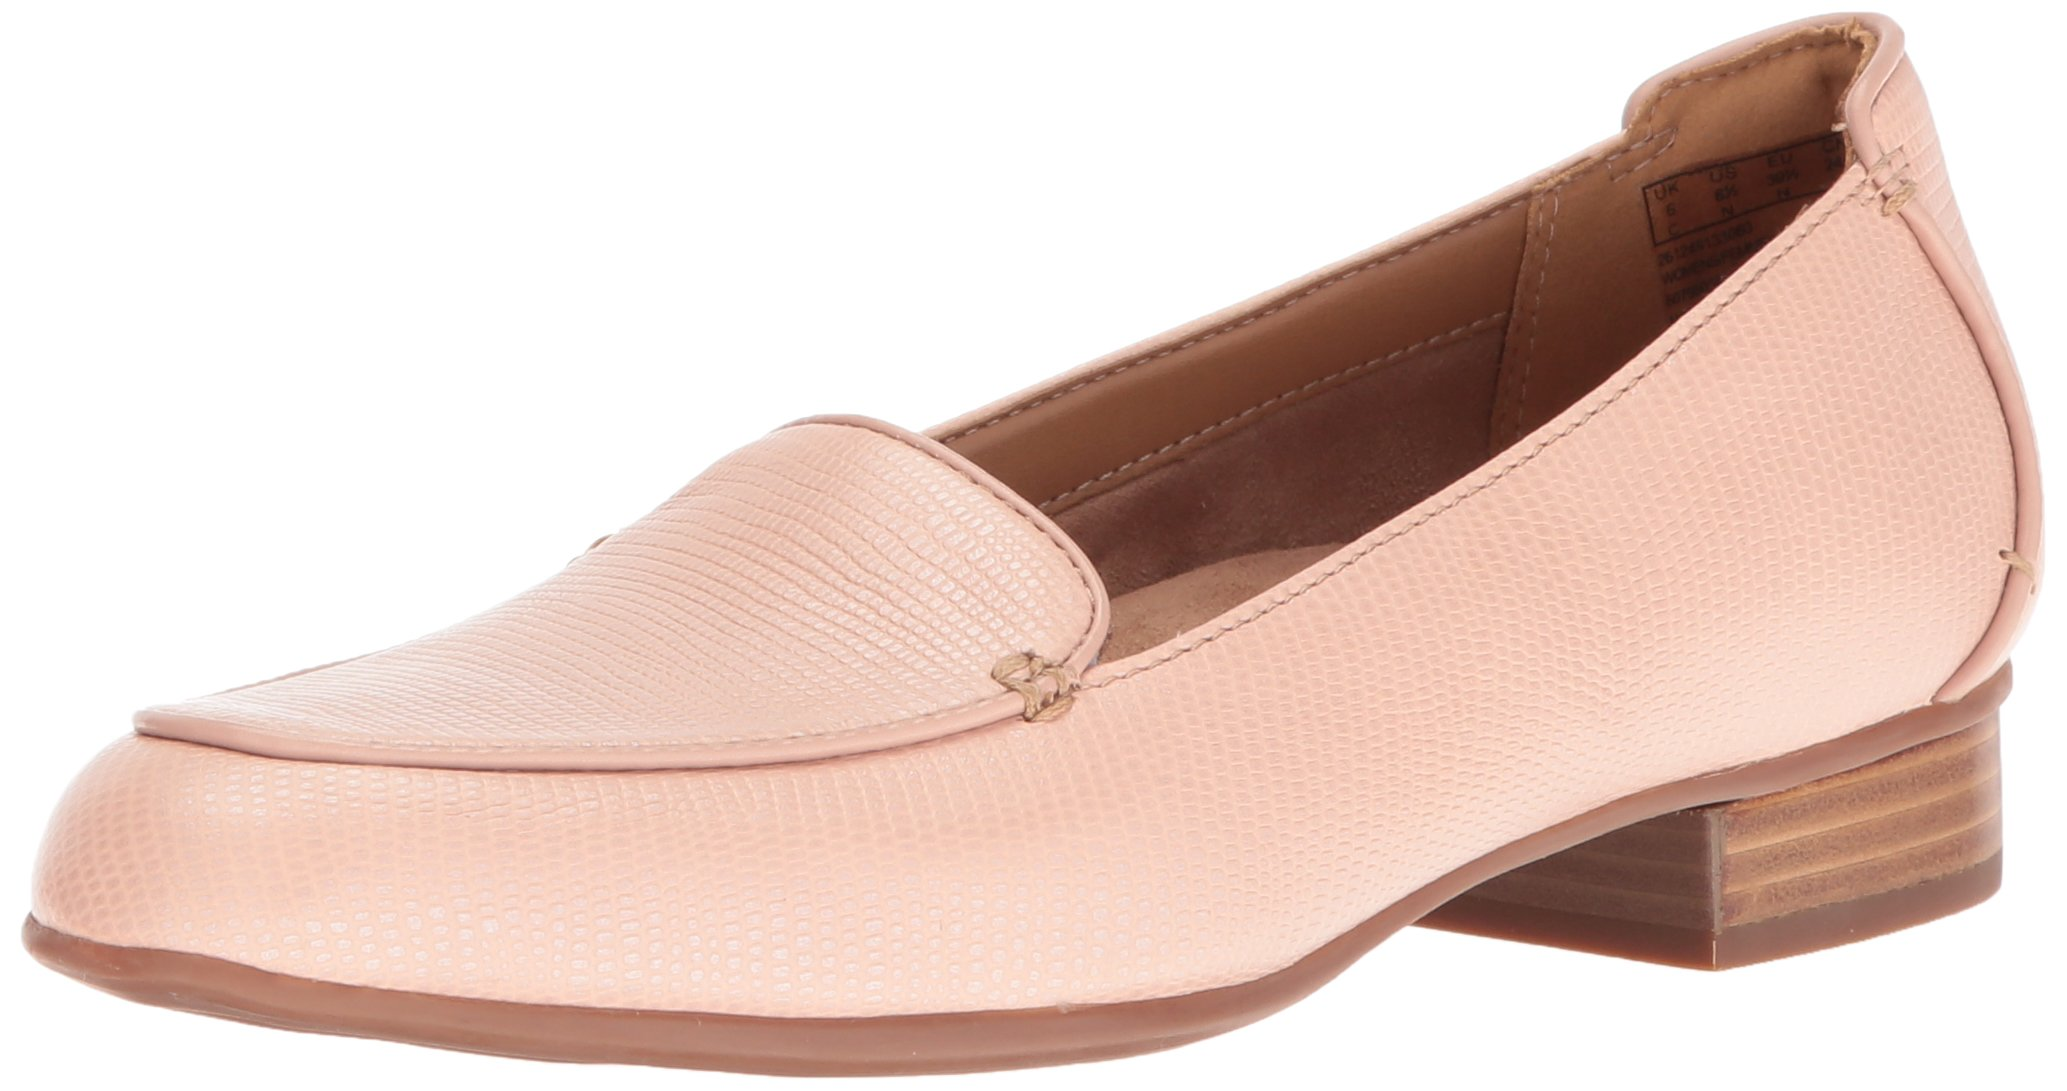 Clarks Women's Keesha Luca Slip-on Loafer, Dusty Pink Leather, 8.5 W US by CLARKS (Image #1)